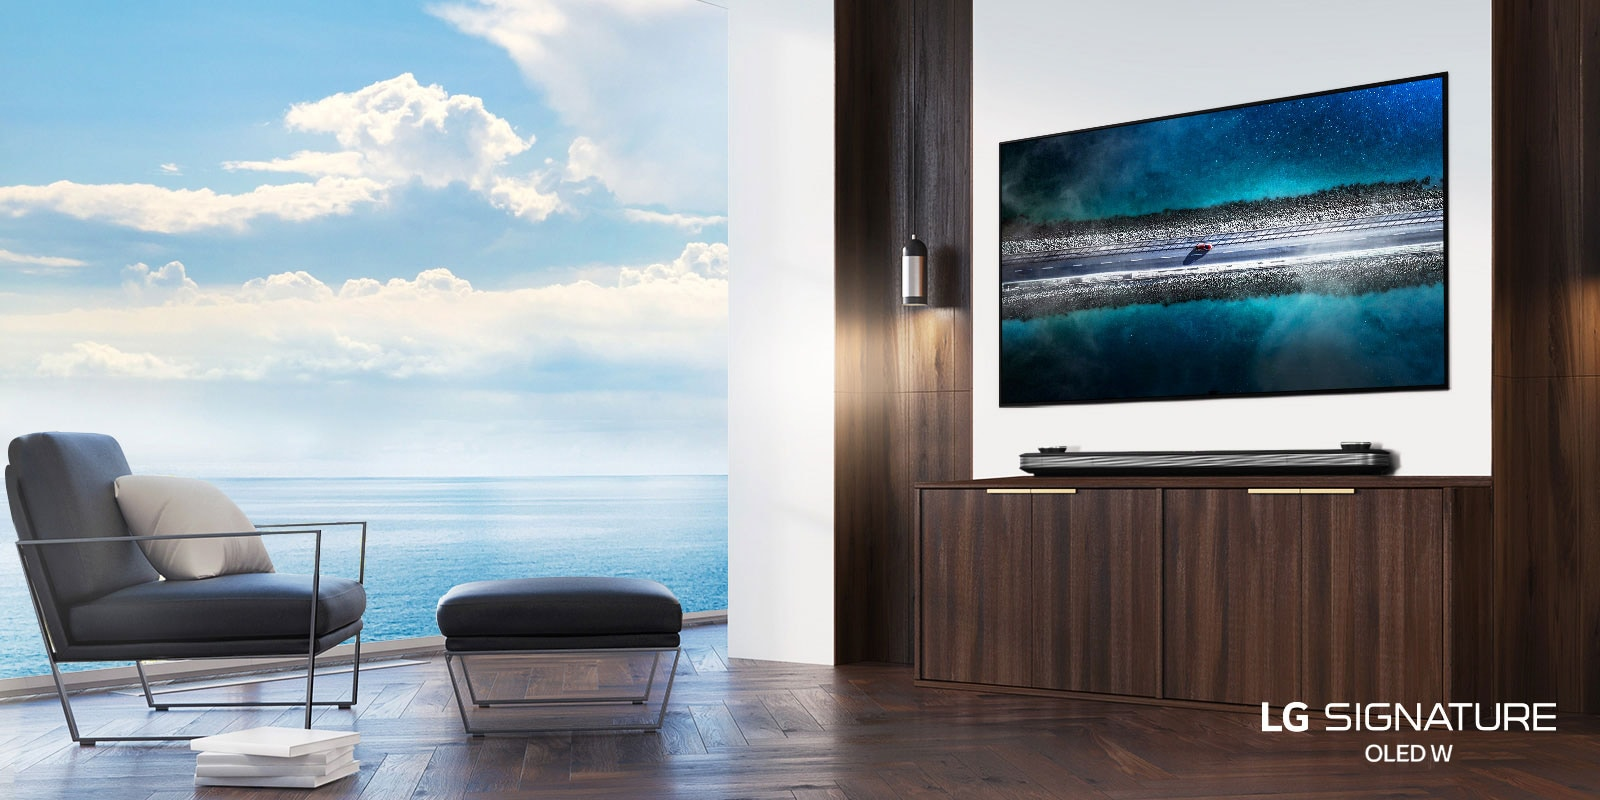 TV-SIGNATURE-OLED-W9-Banner-Desktop-v1